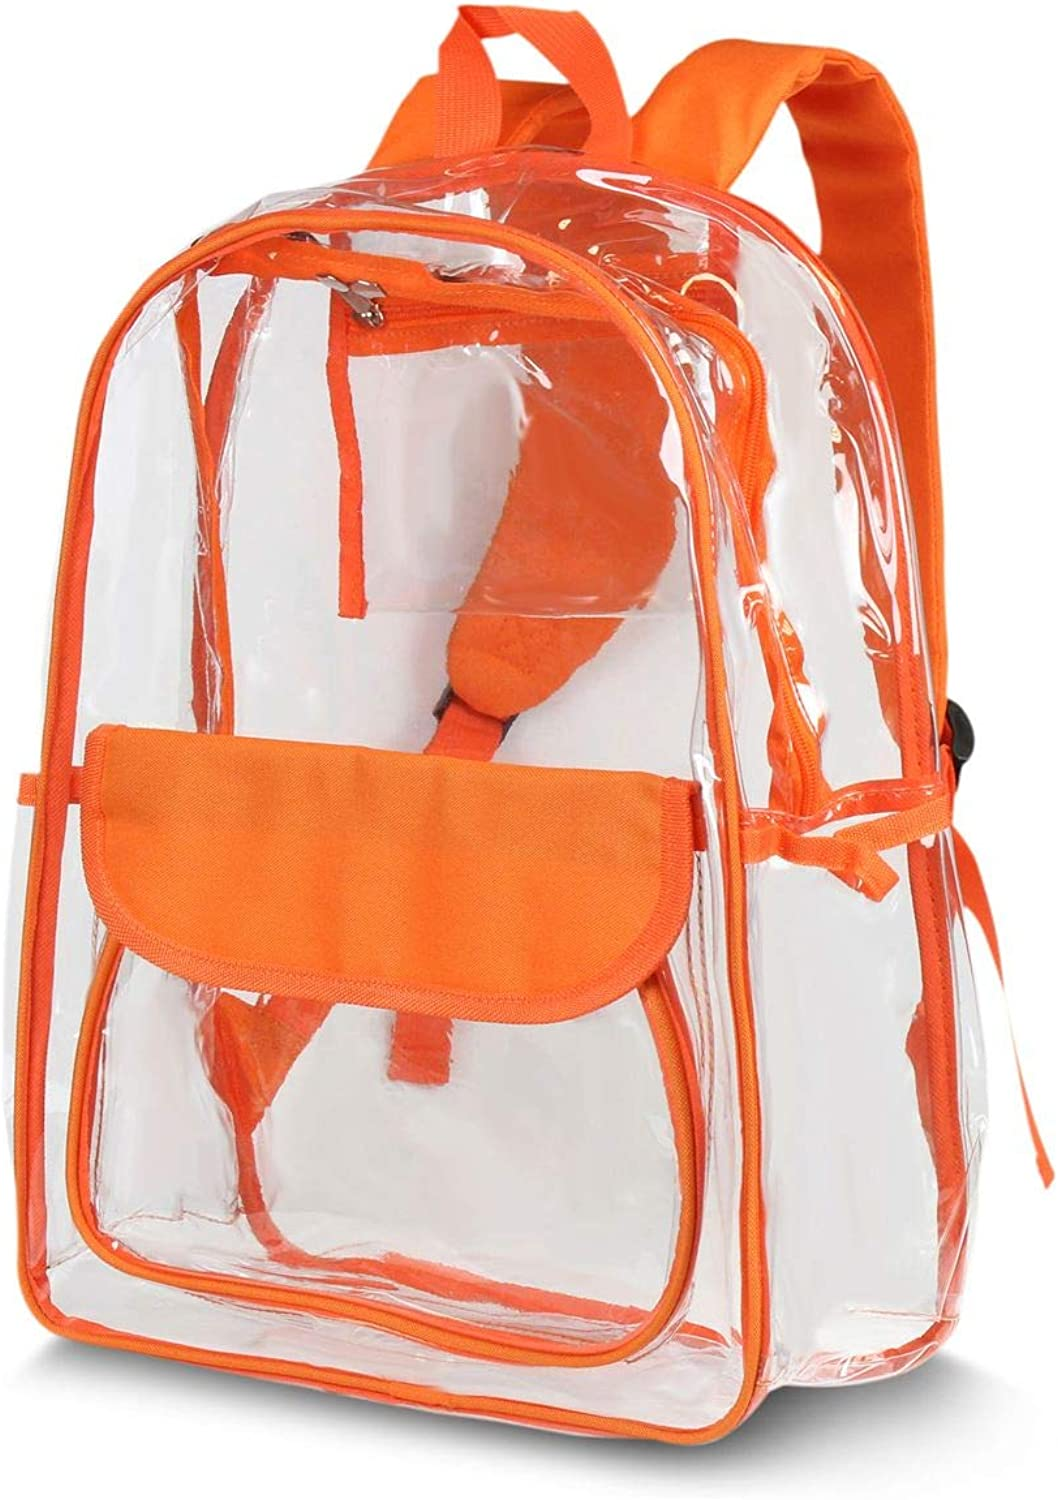 Orange Transparent Backpack